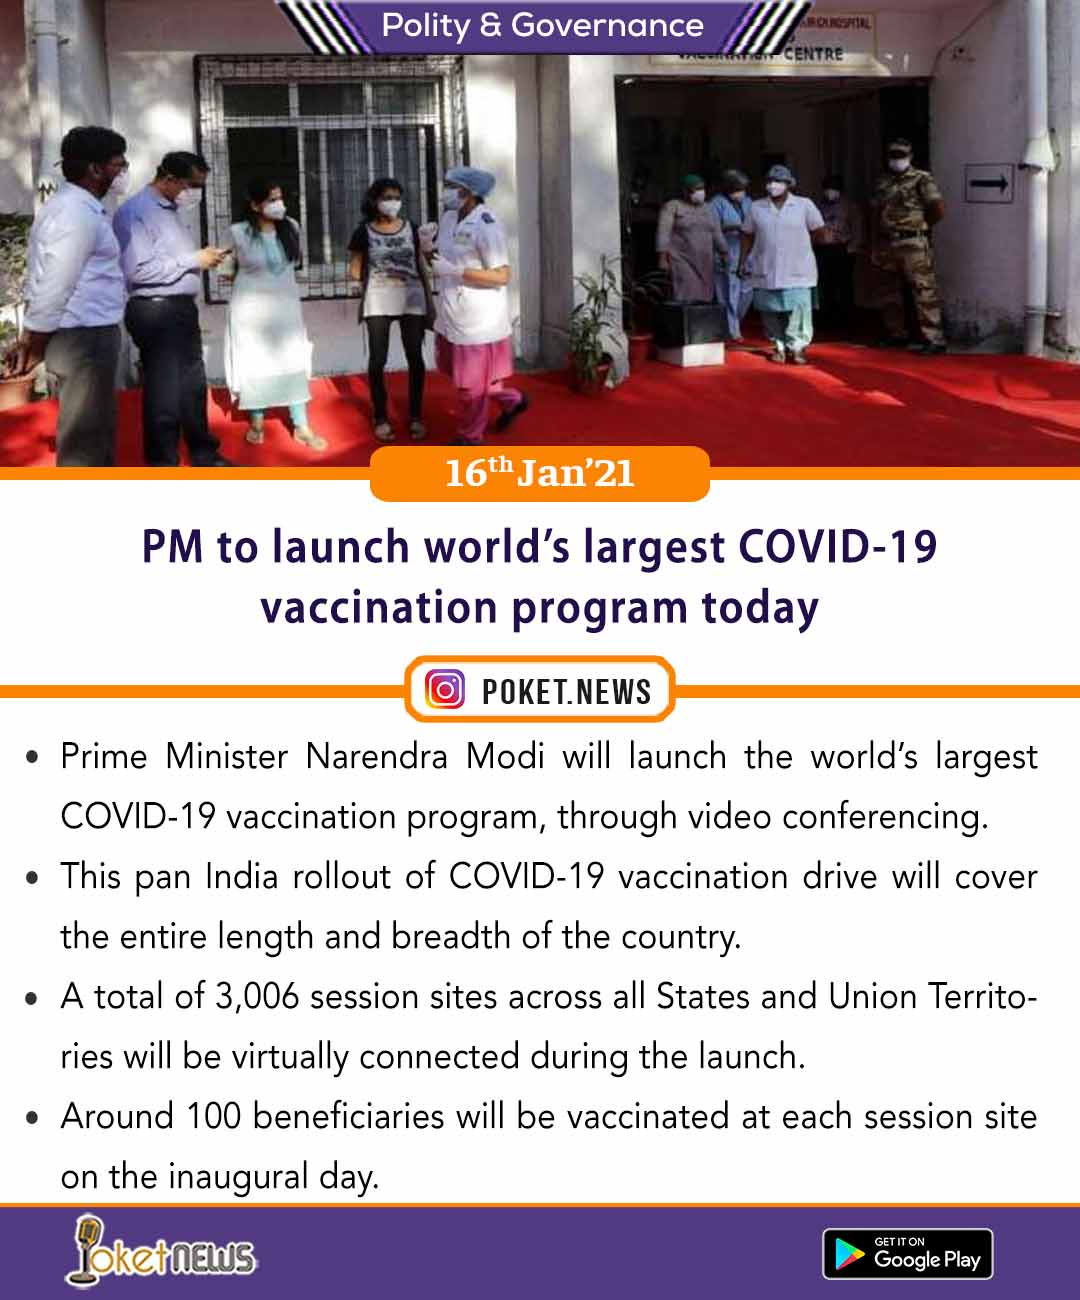 PM to launch world's largest COVID-19 vaccination program today